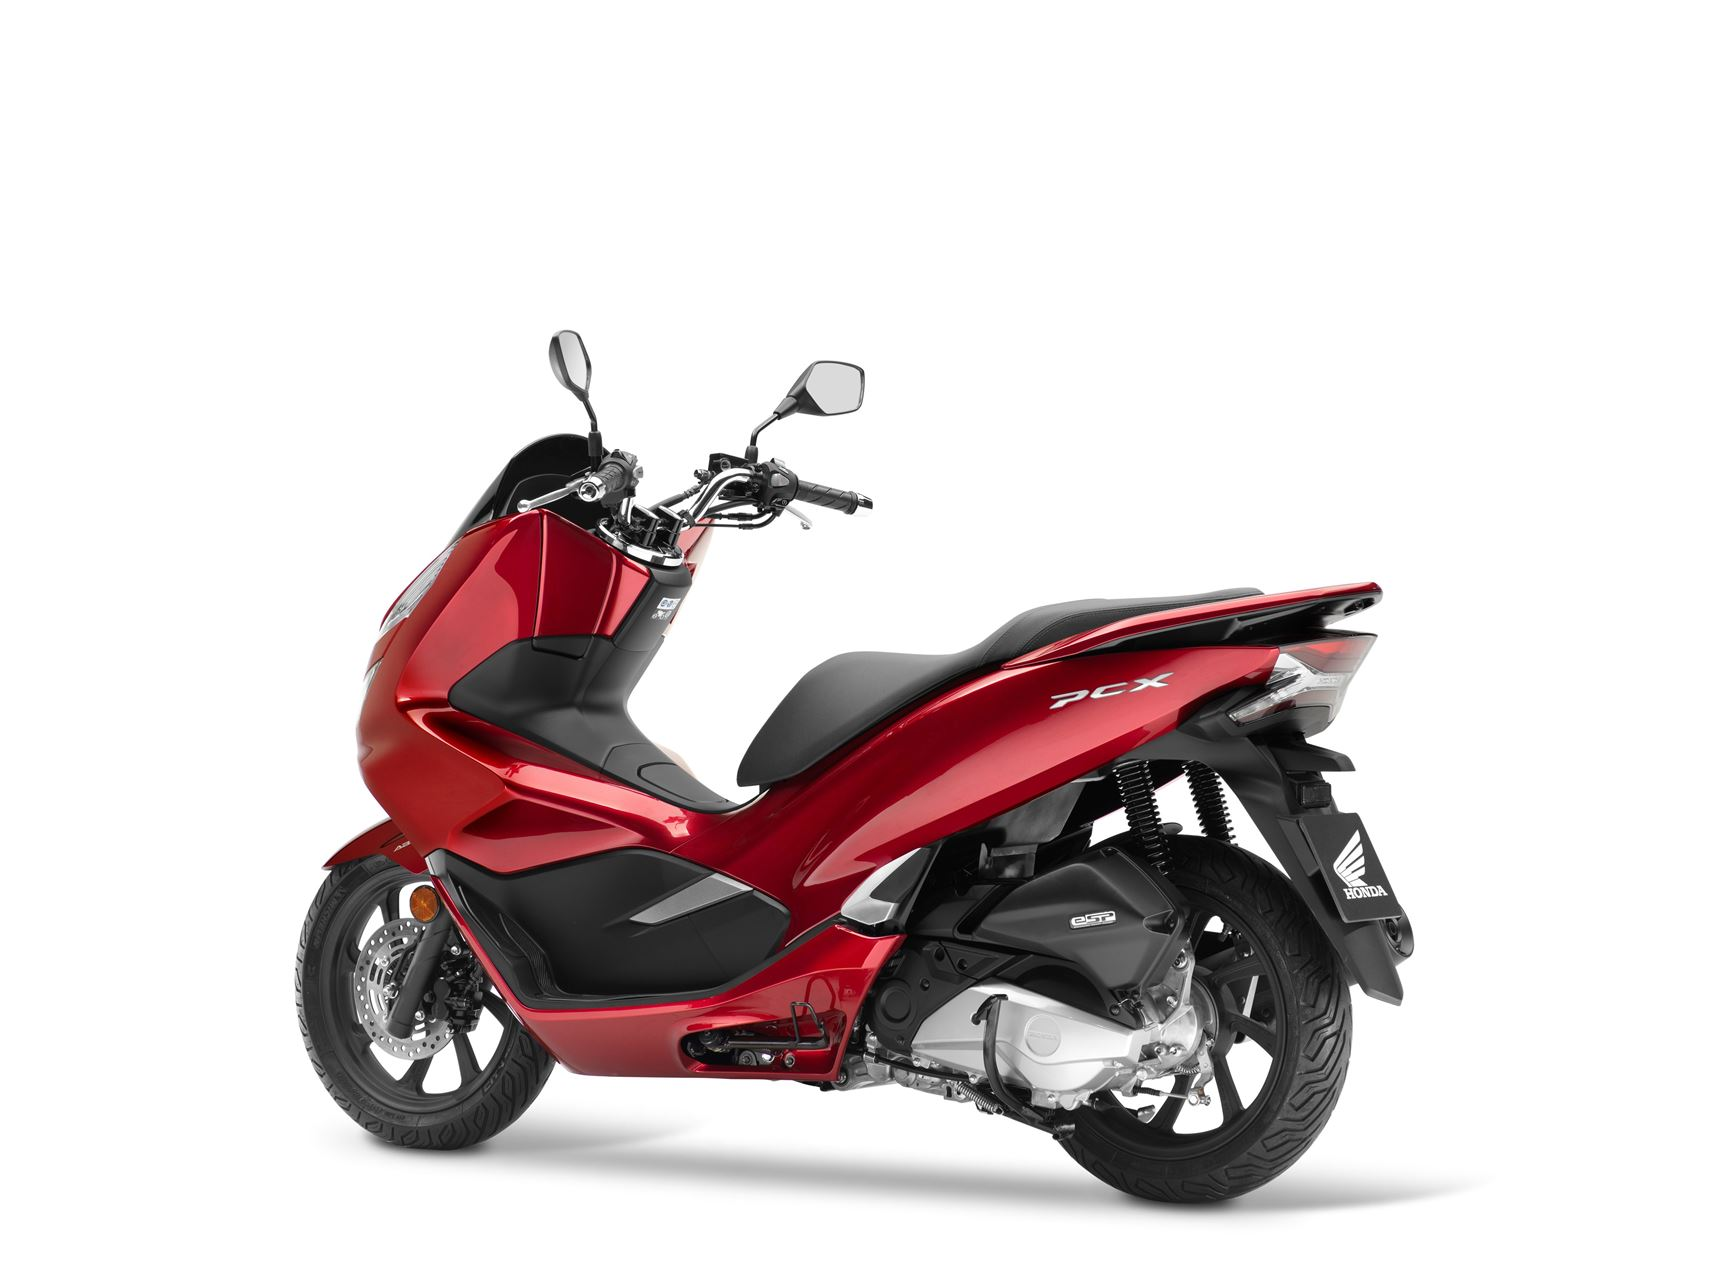 honda pcx125 2018 scooter scooters andar de moto. Black Bedroom Furniture Sets. Home Design Ideas